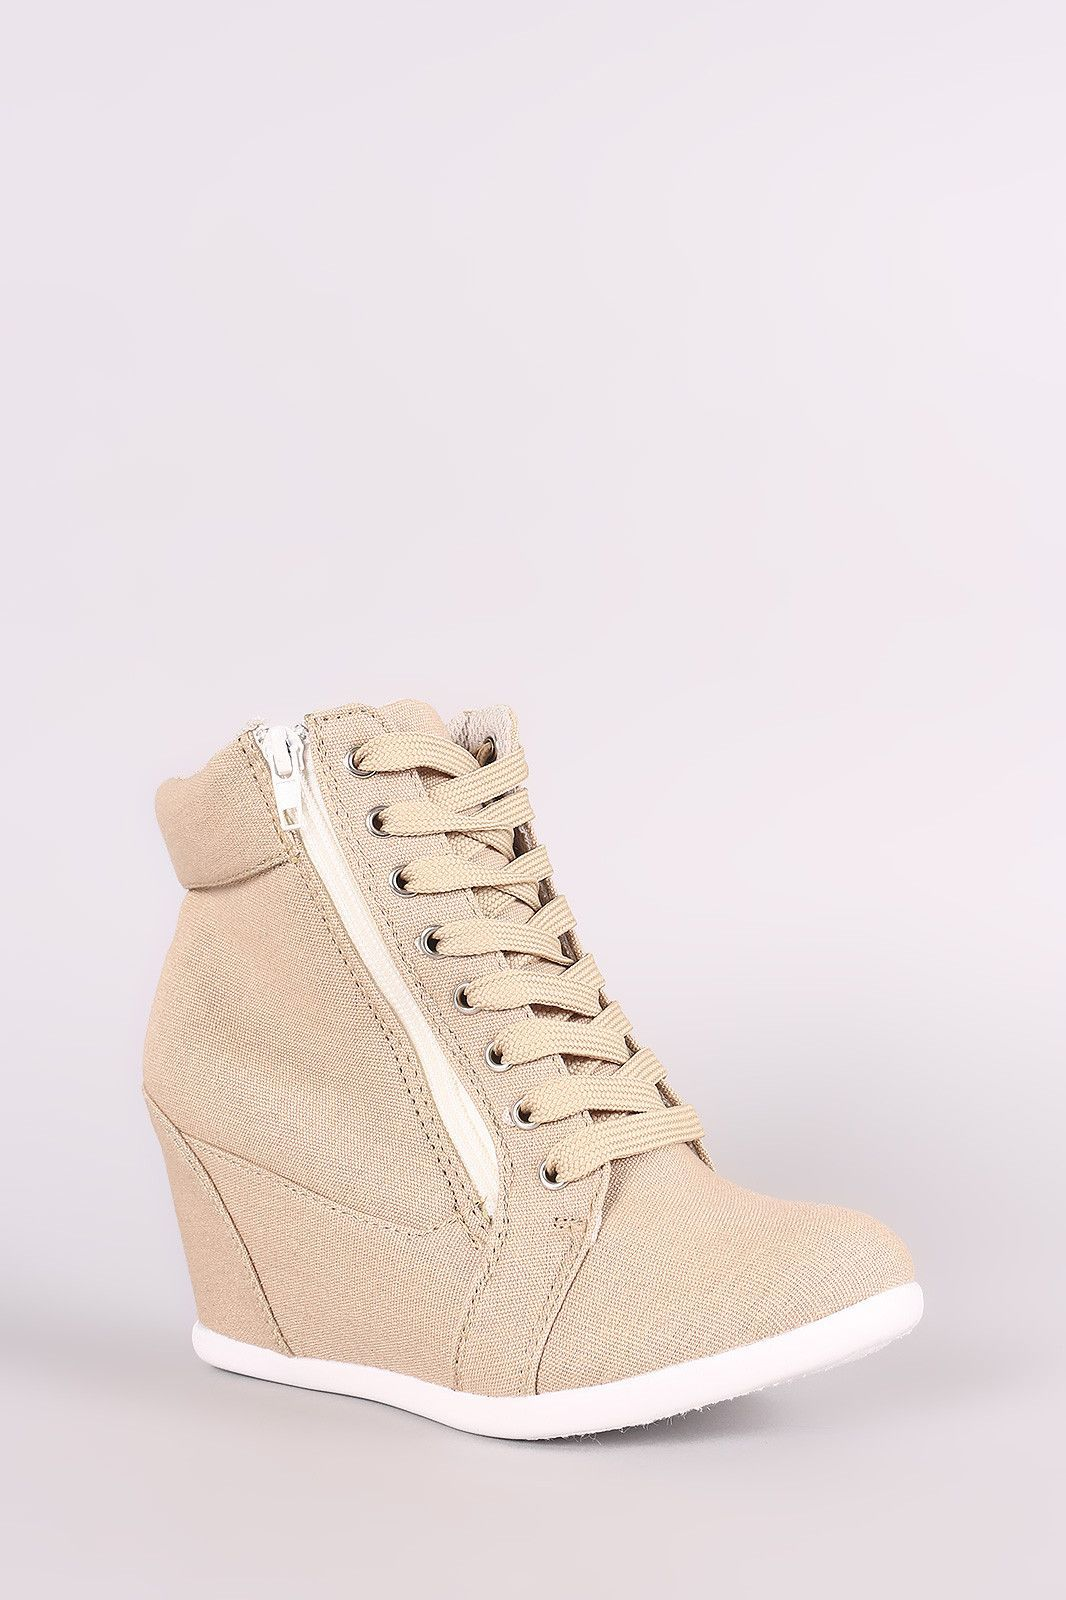 cbb468ea62ca5 Linen Lace-Up High Top Wedge Sneaker   Products   Pinterest